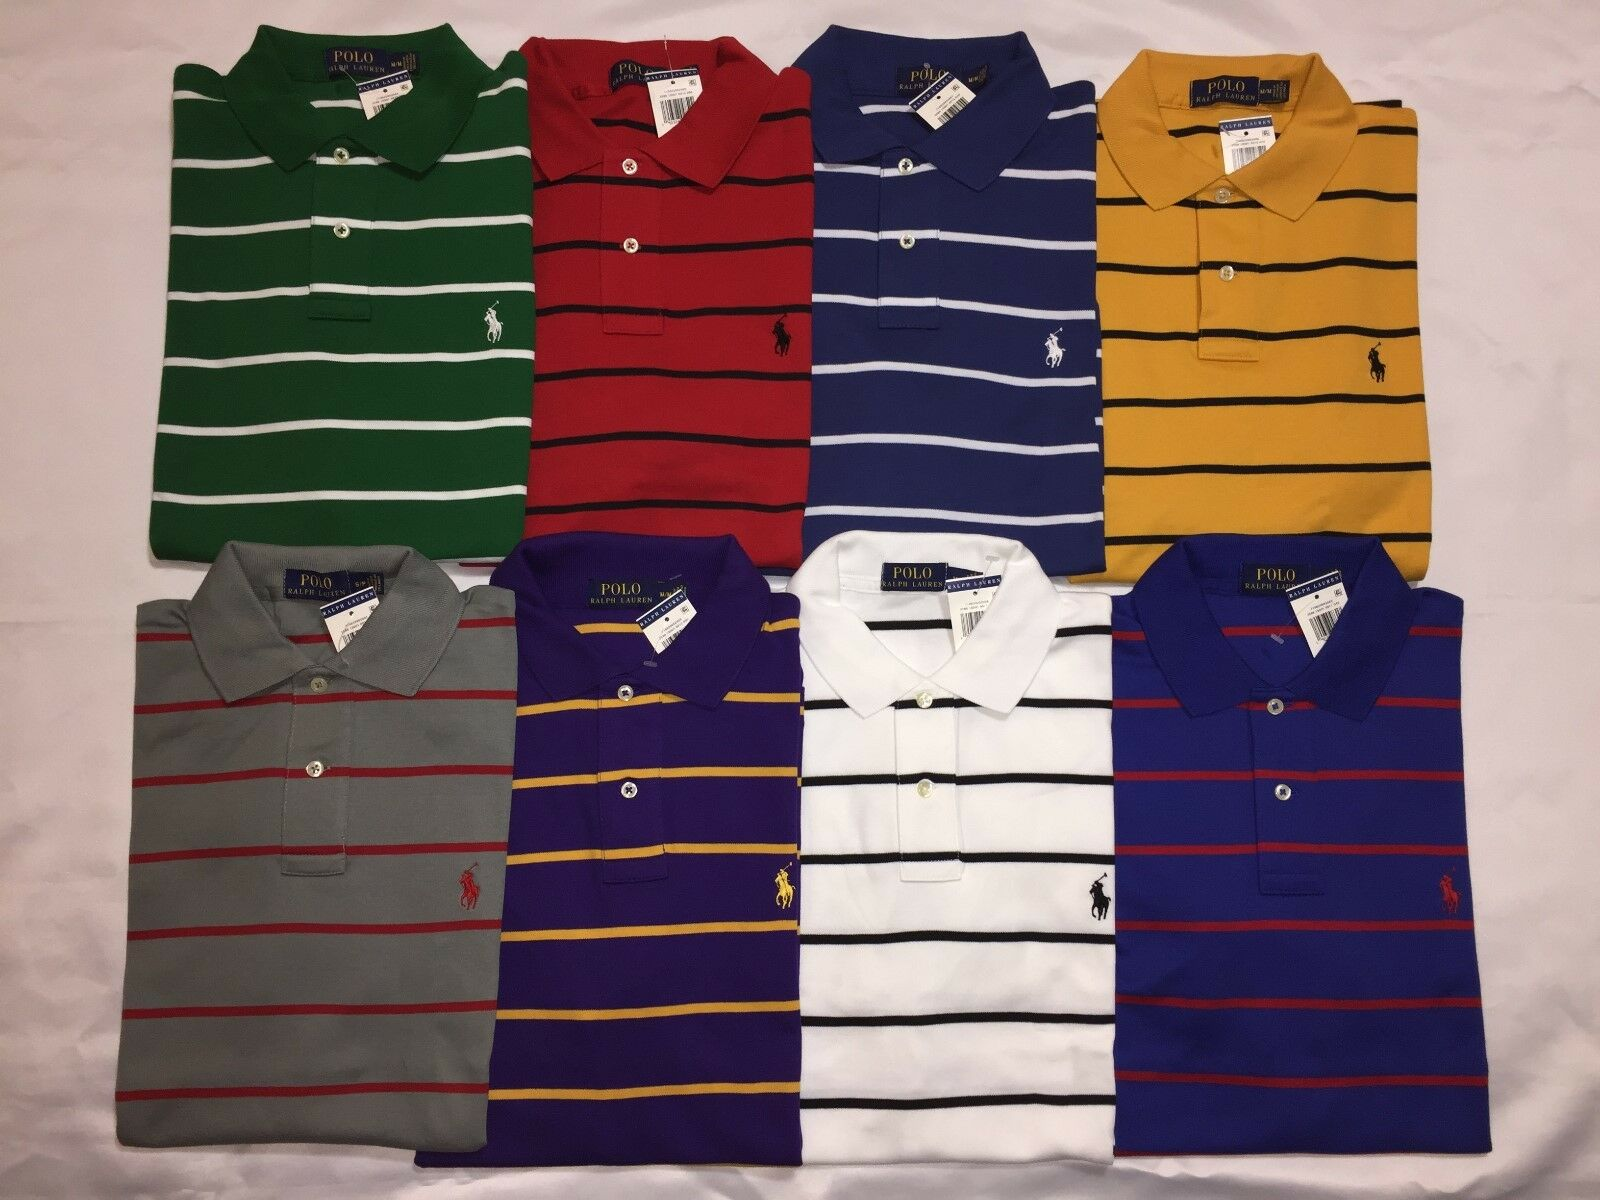 NEW WITH TAGS POLO RALPH LAUREN MEN'S CLASSIC FITSTRIPES POLO SHIRT-VALUE-